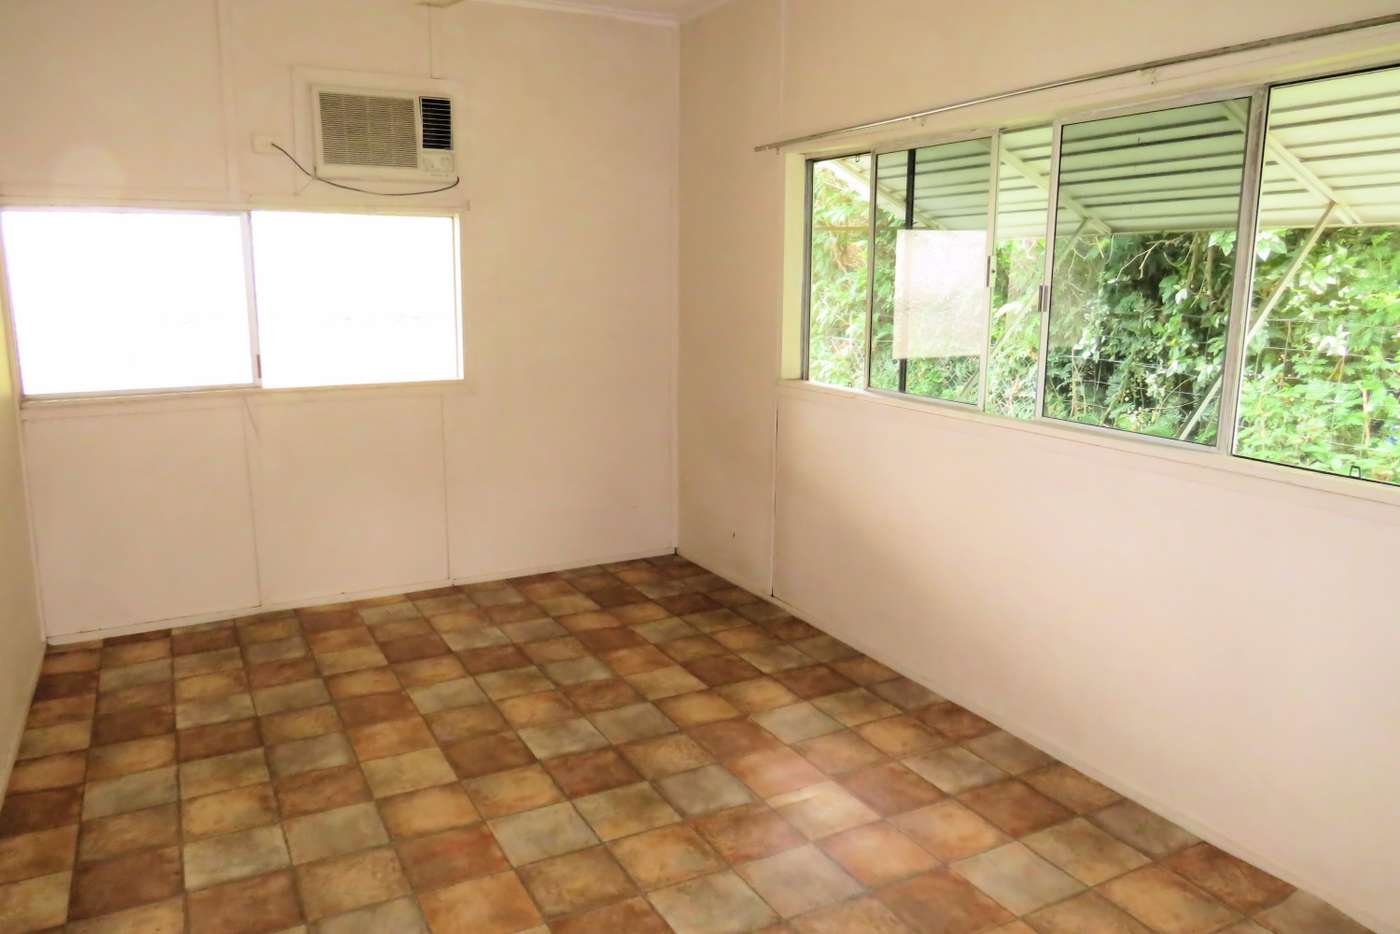 Sixth view of Homely house listing, 48 Gerard Street, Currajong QLD 4812